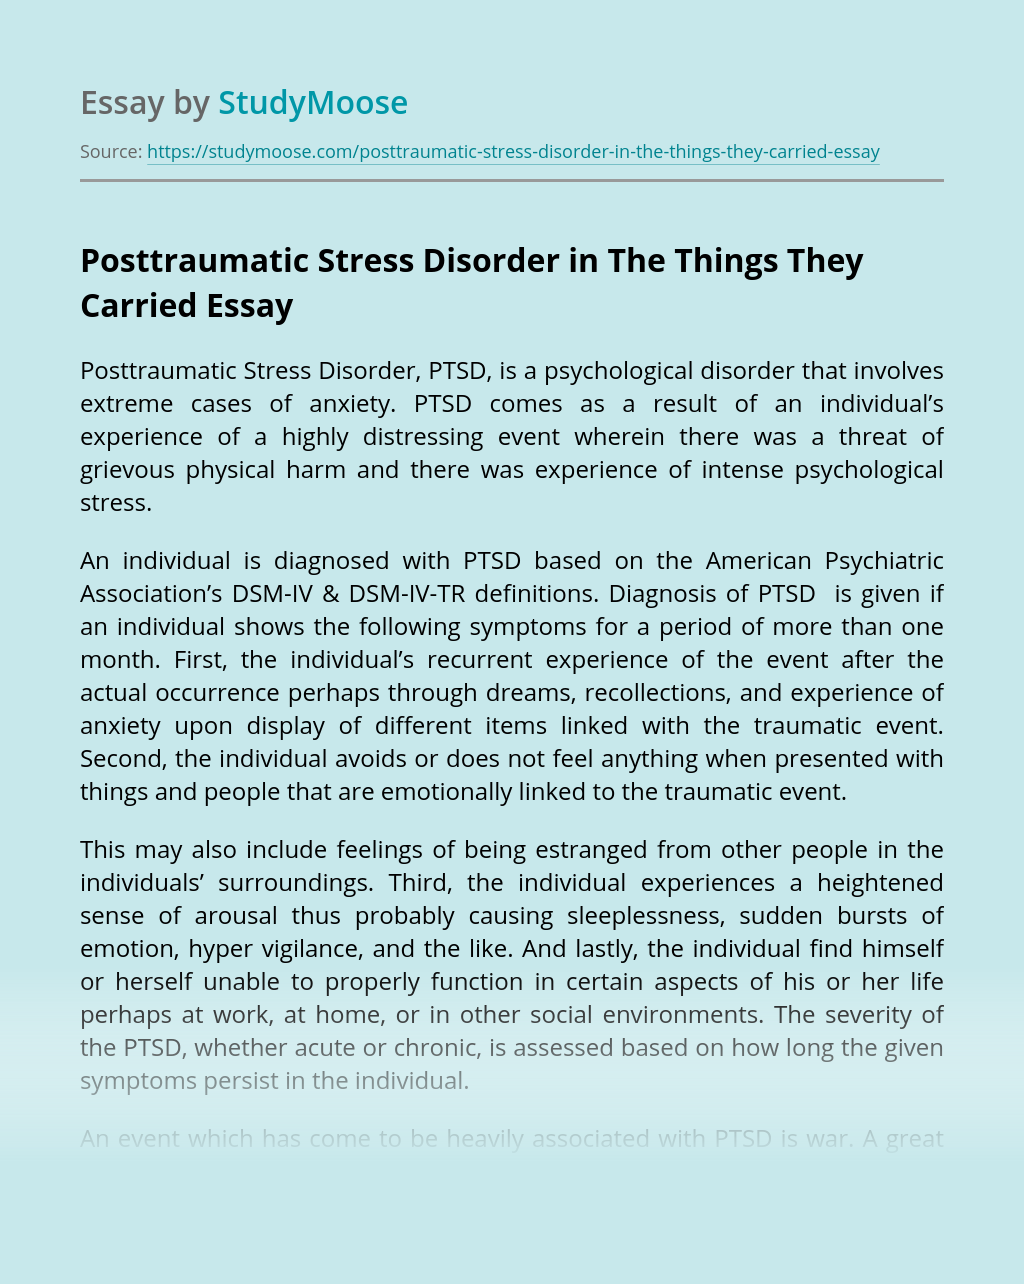 Posttraumatic Stress Disorder in The Things They Carried